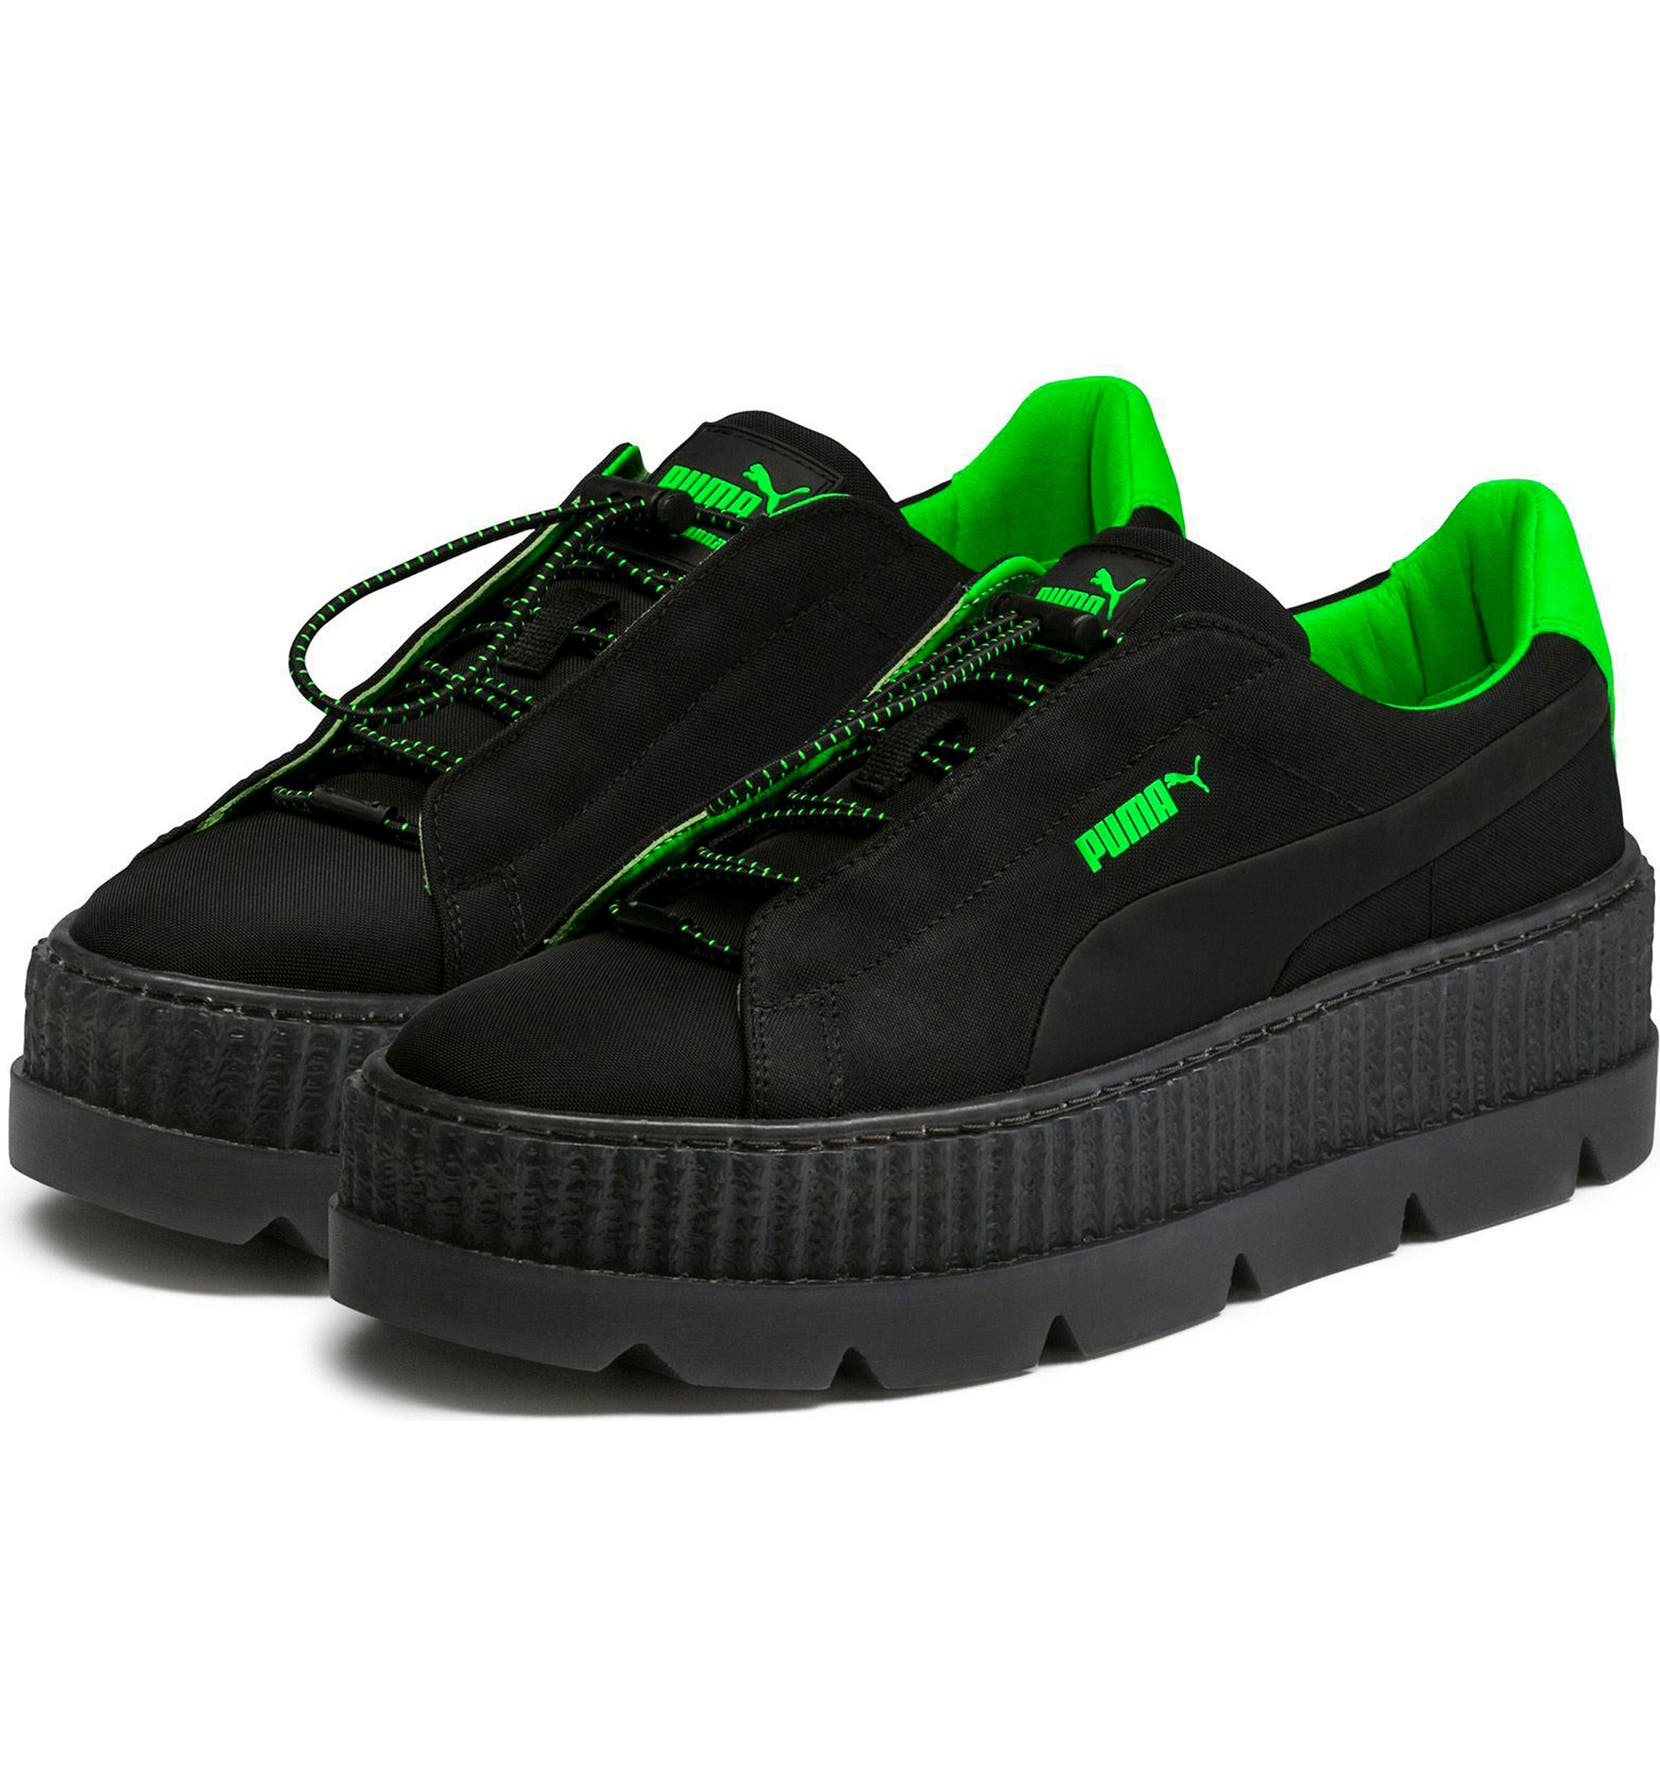 56133d9d9adab6 FENTY PUMA by Rihanna Cleated Creeper Sneaker